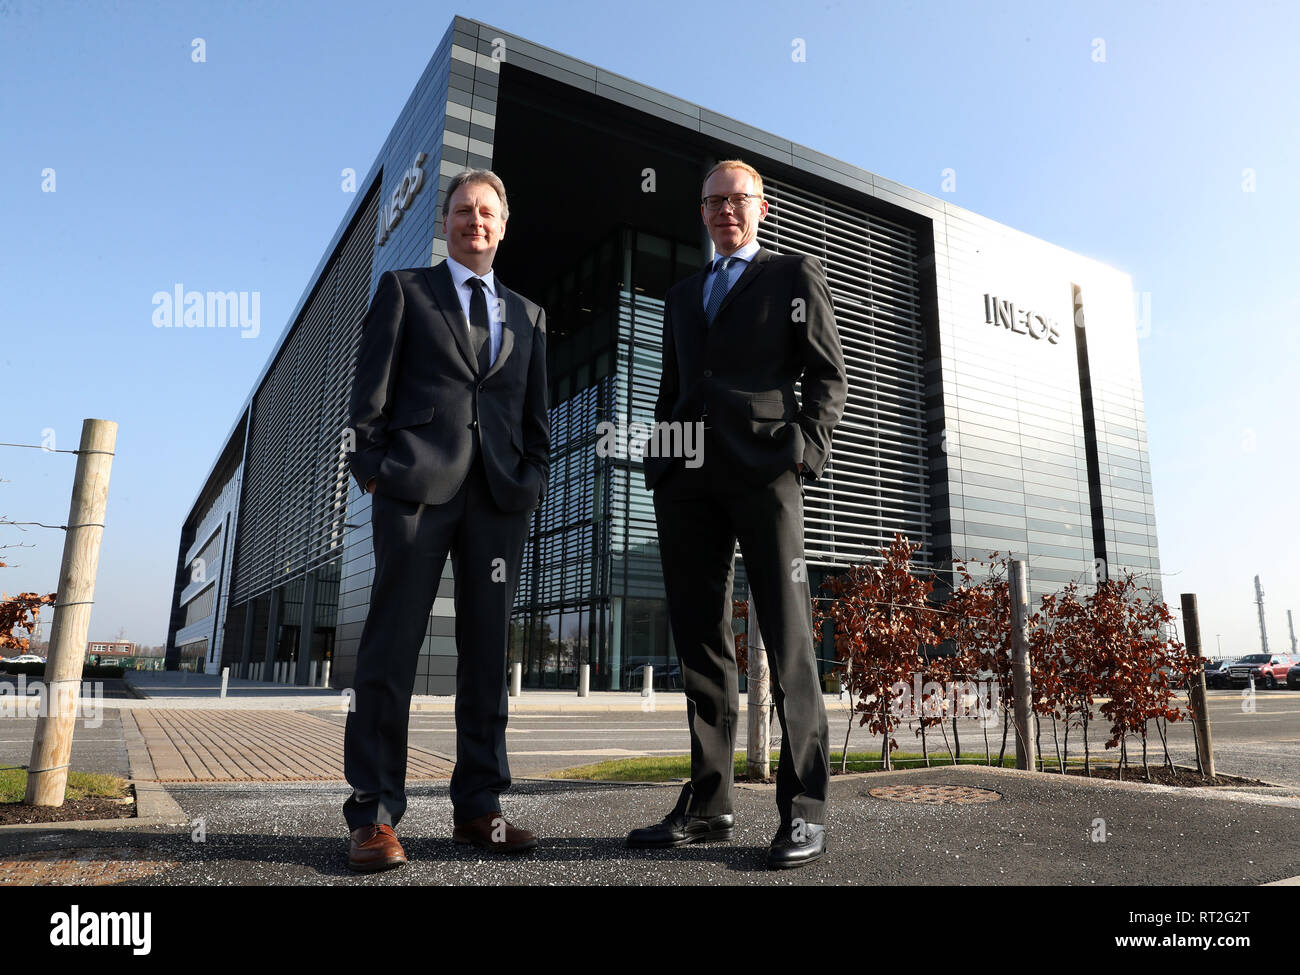 Andrew Gardner, chief executive of Ineos Forties Pipeline System (FPS) and Tobias Hannemann (right), chief executive of Ineos O&P UK at INEOS Grangemouth headquarters after the company made an investment announcement. - Stock Image